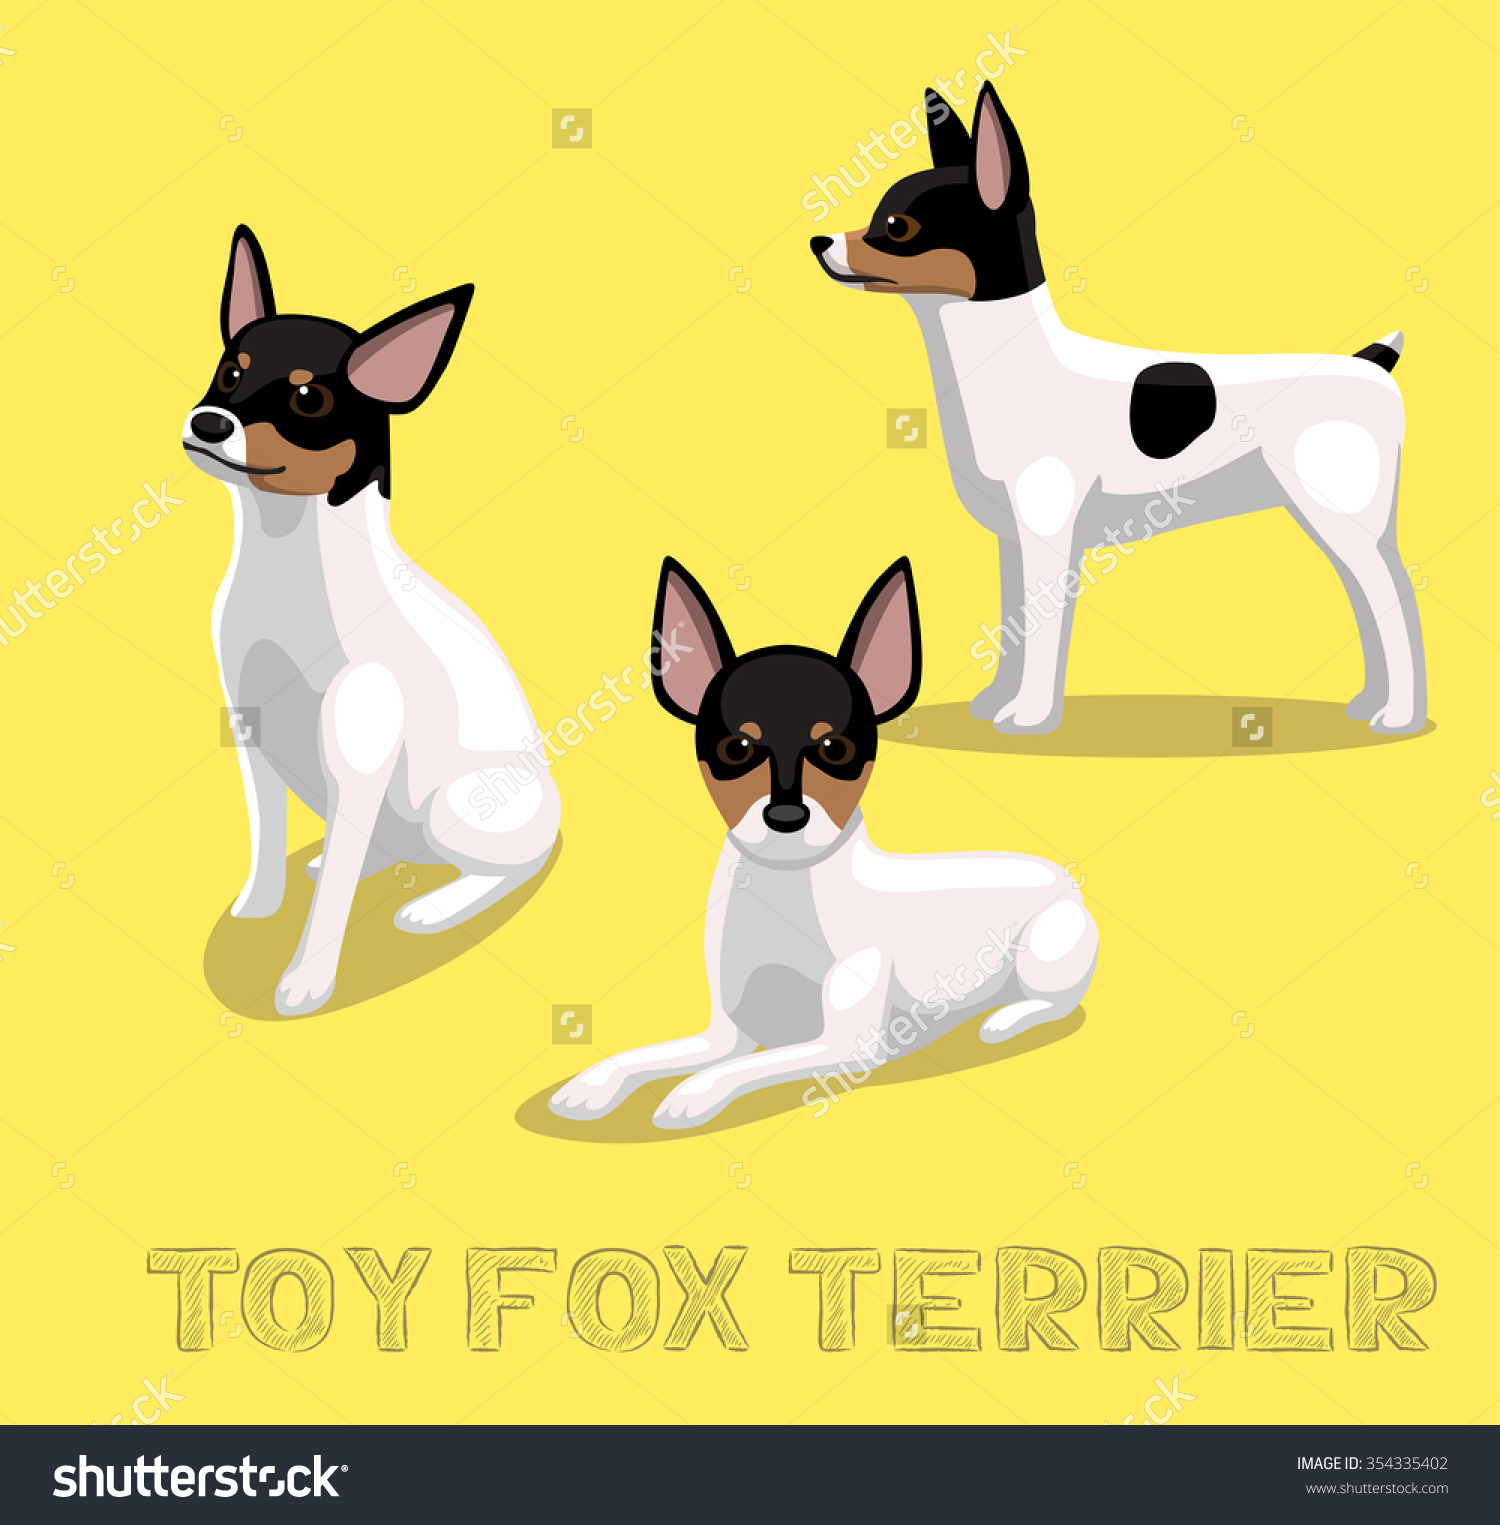 Miniature fox terrier clipart.